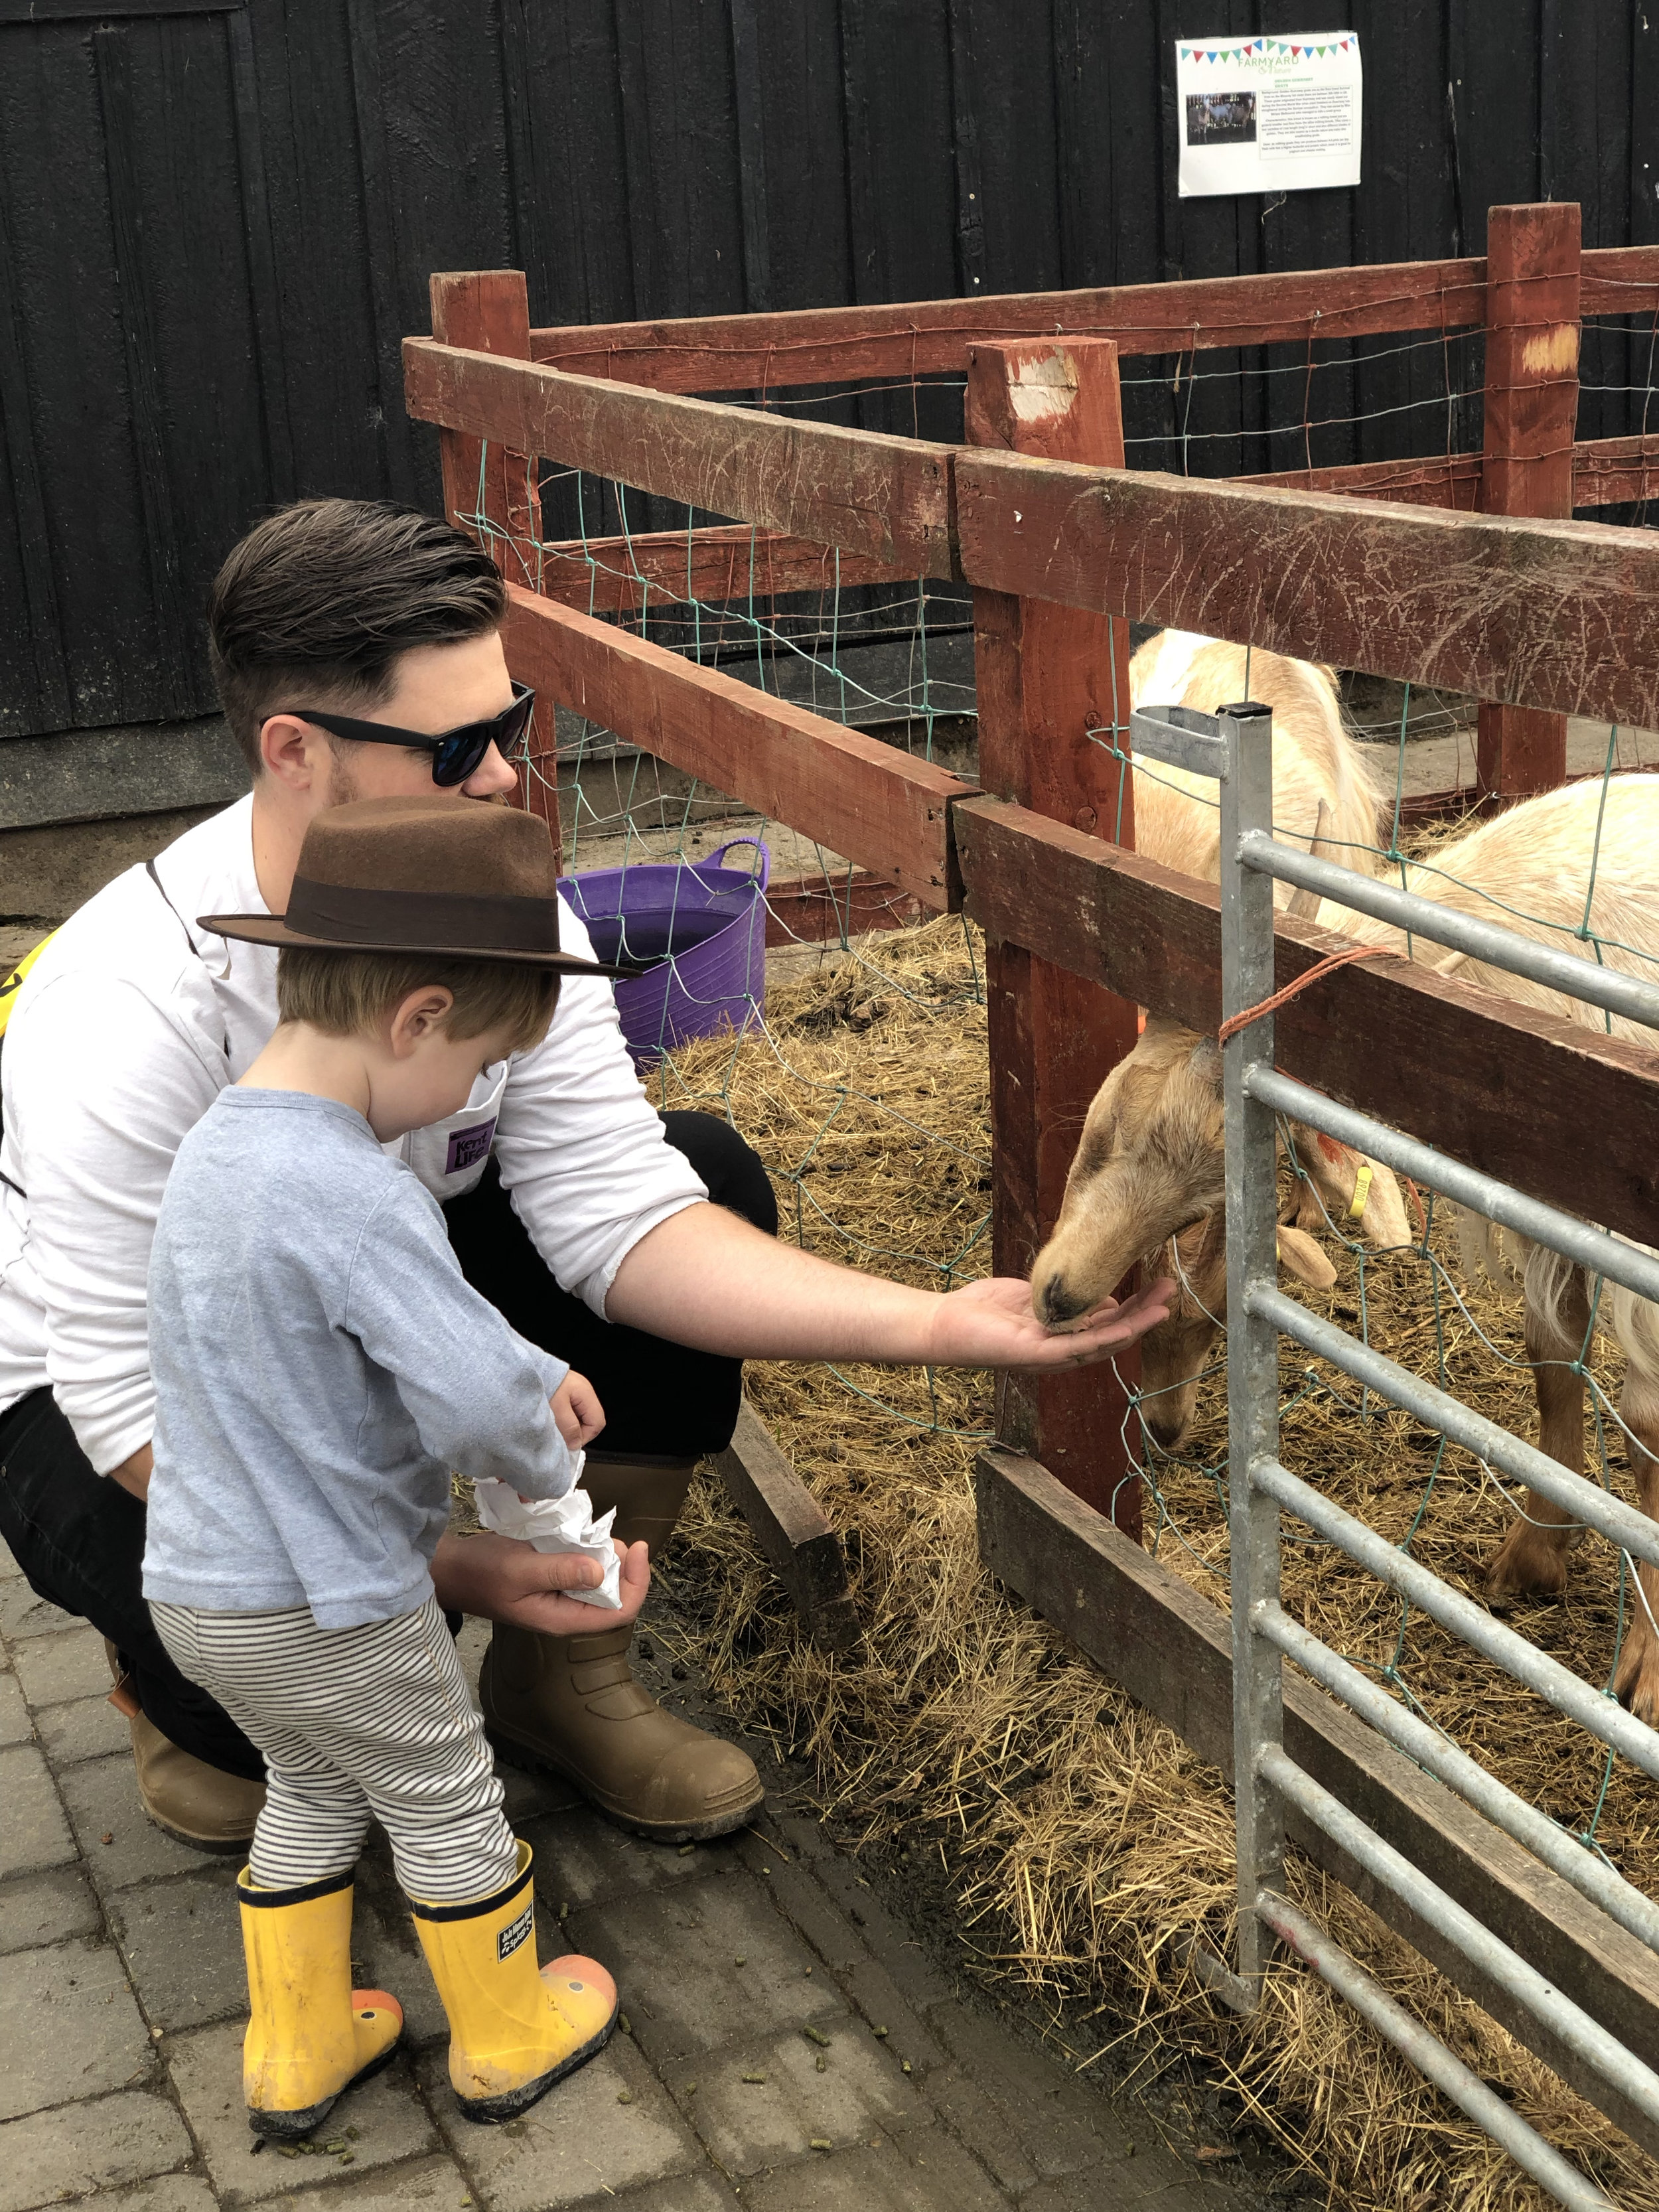 kent-life-farm-maidstone-family-day-out-support-local-magazine-feeding-animals.jpg